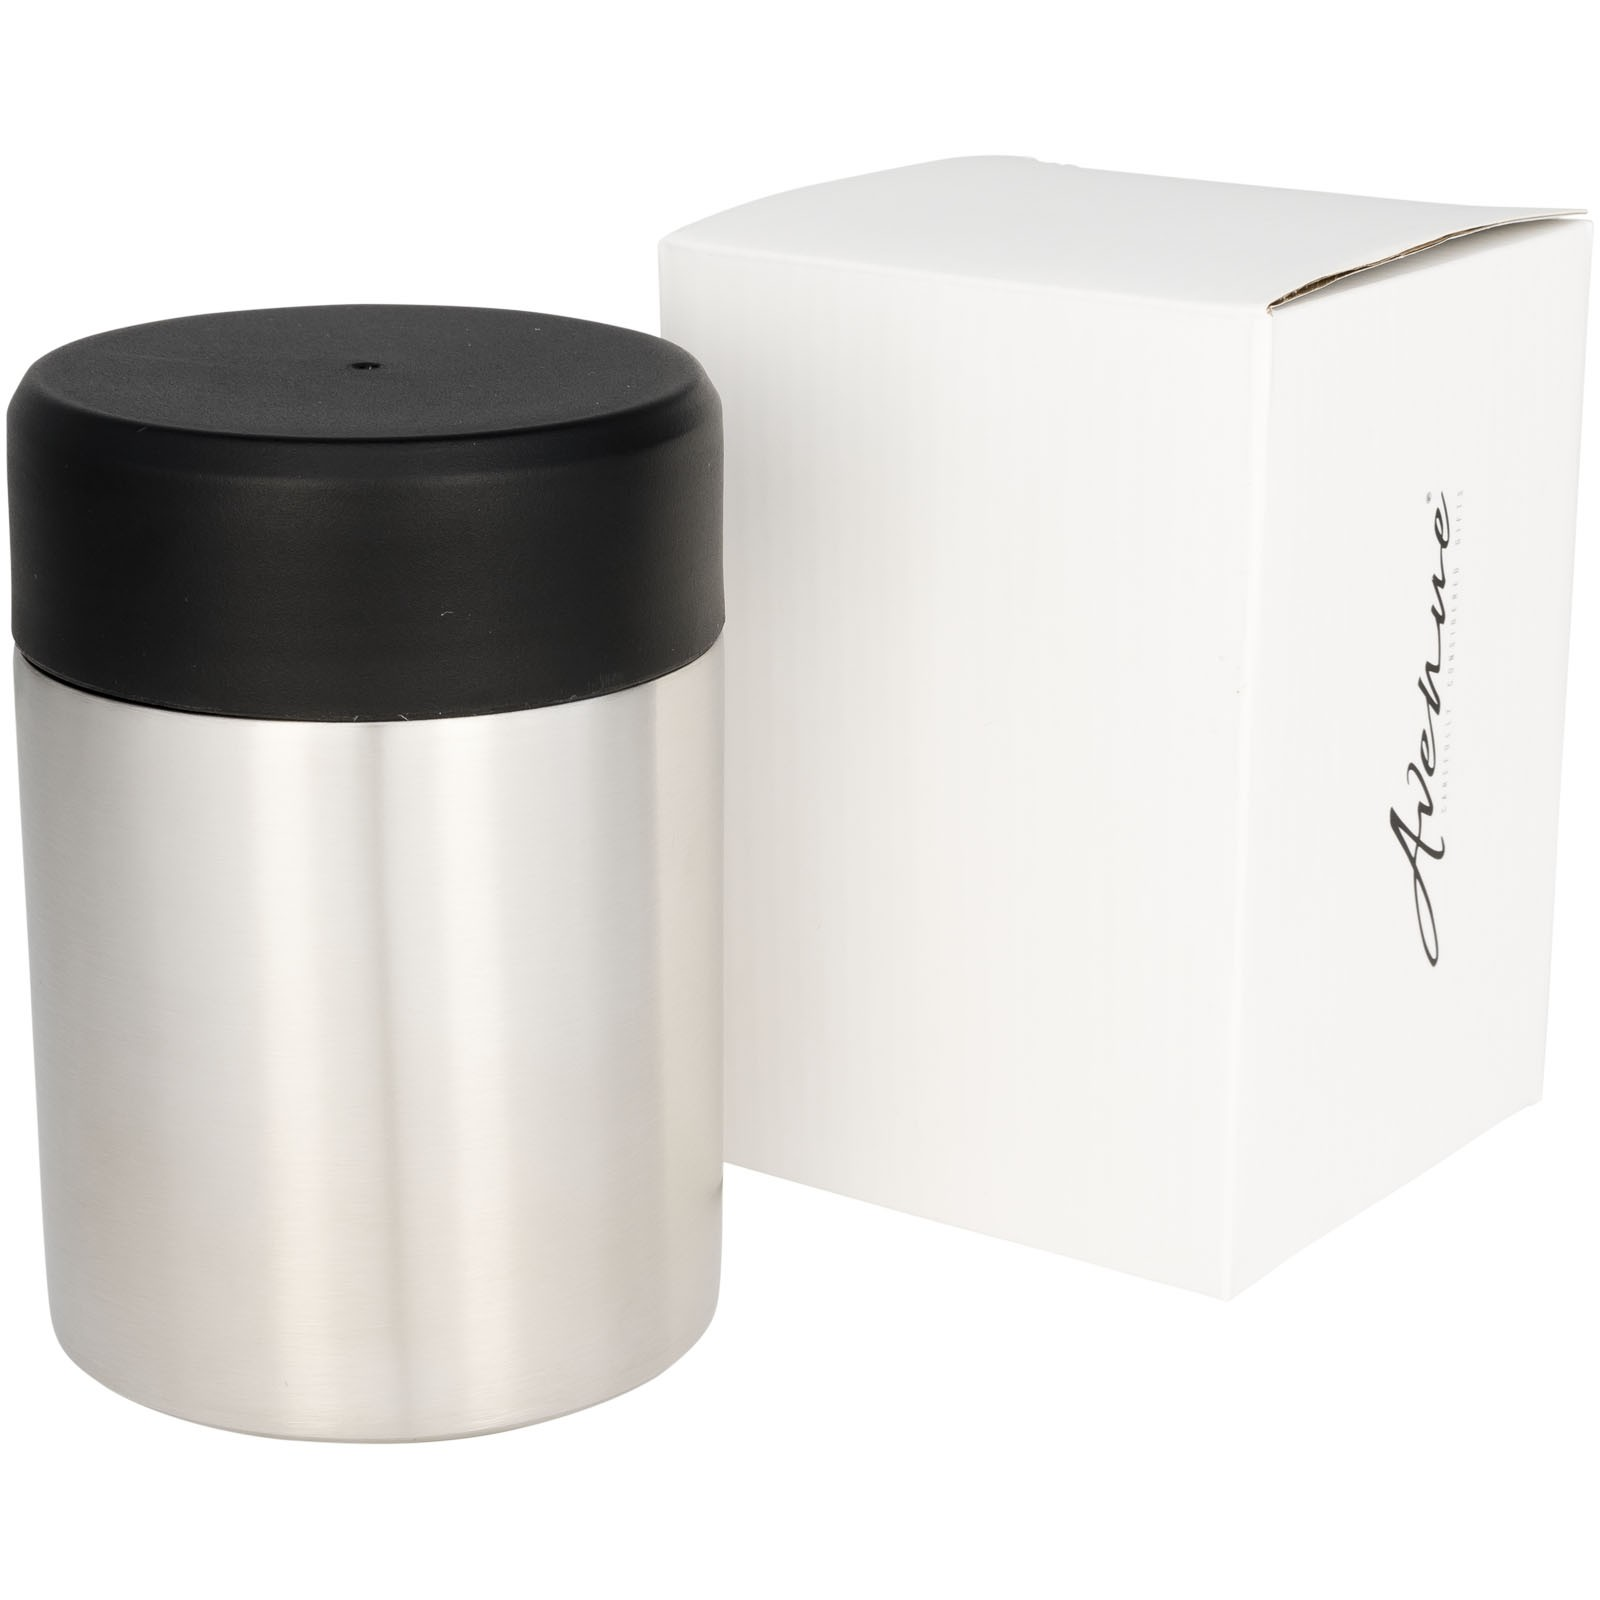 Vacuum Copper Insulated Food Container Grey Thermos